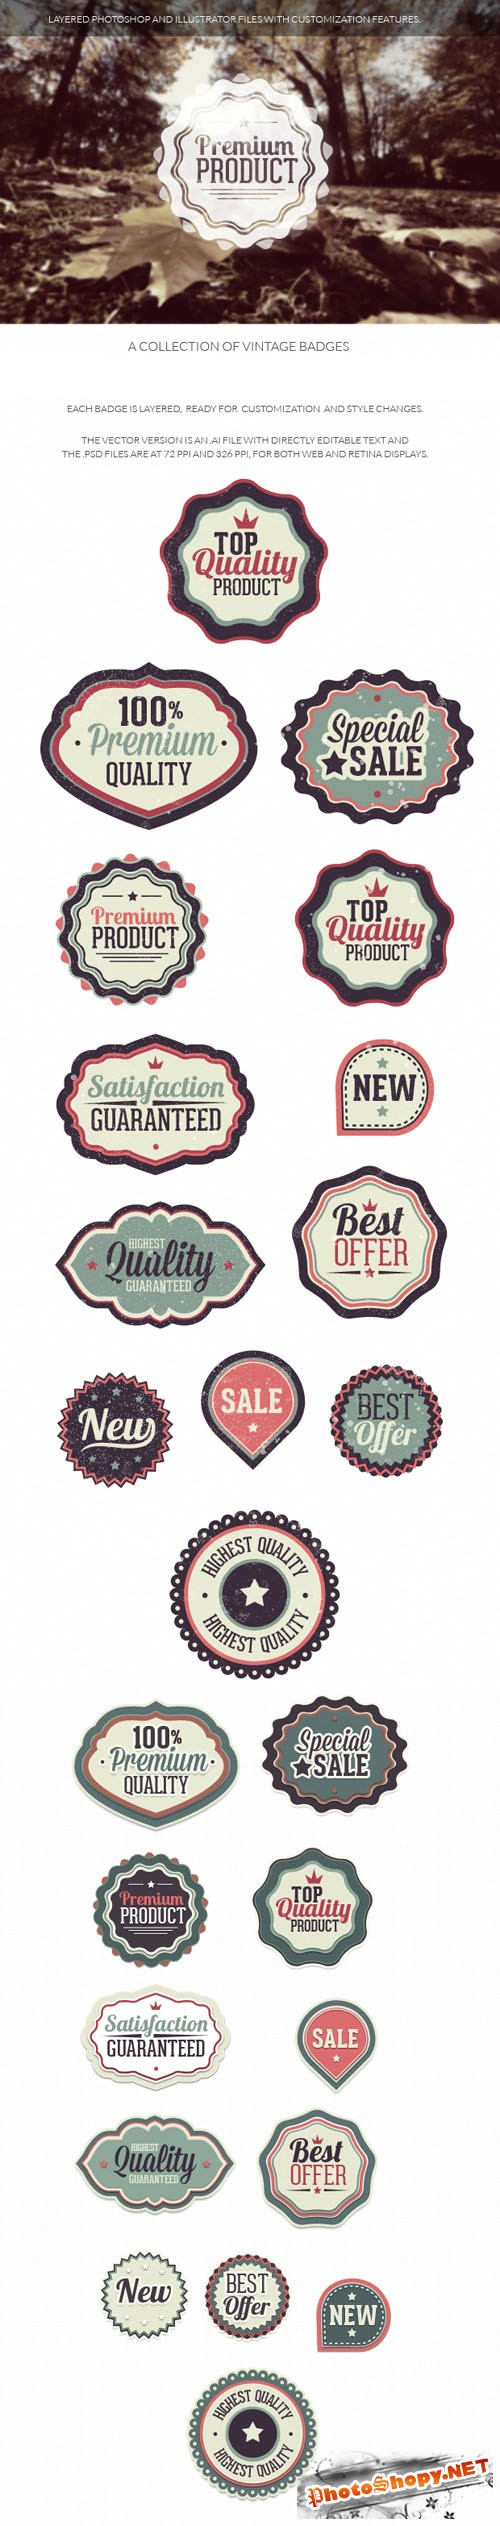 Vintage Badges Vector Elements Set